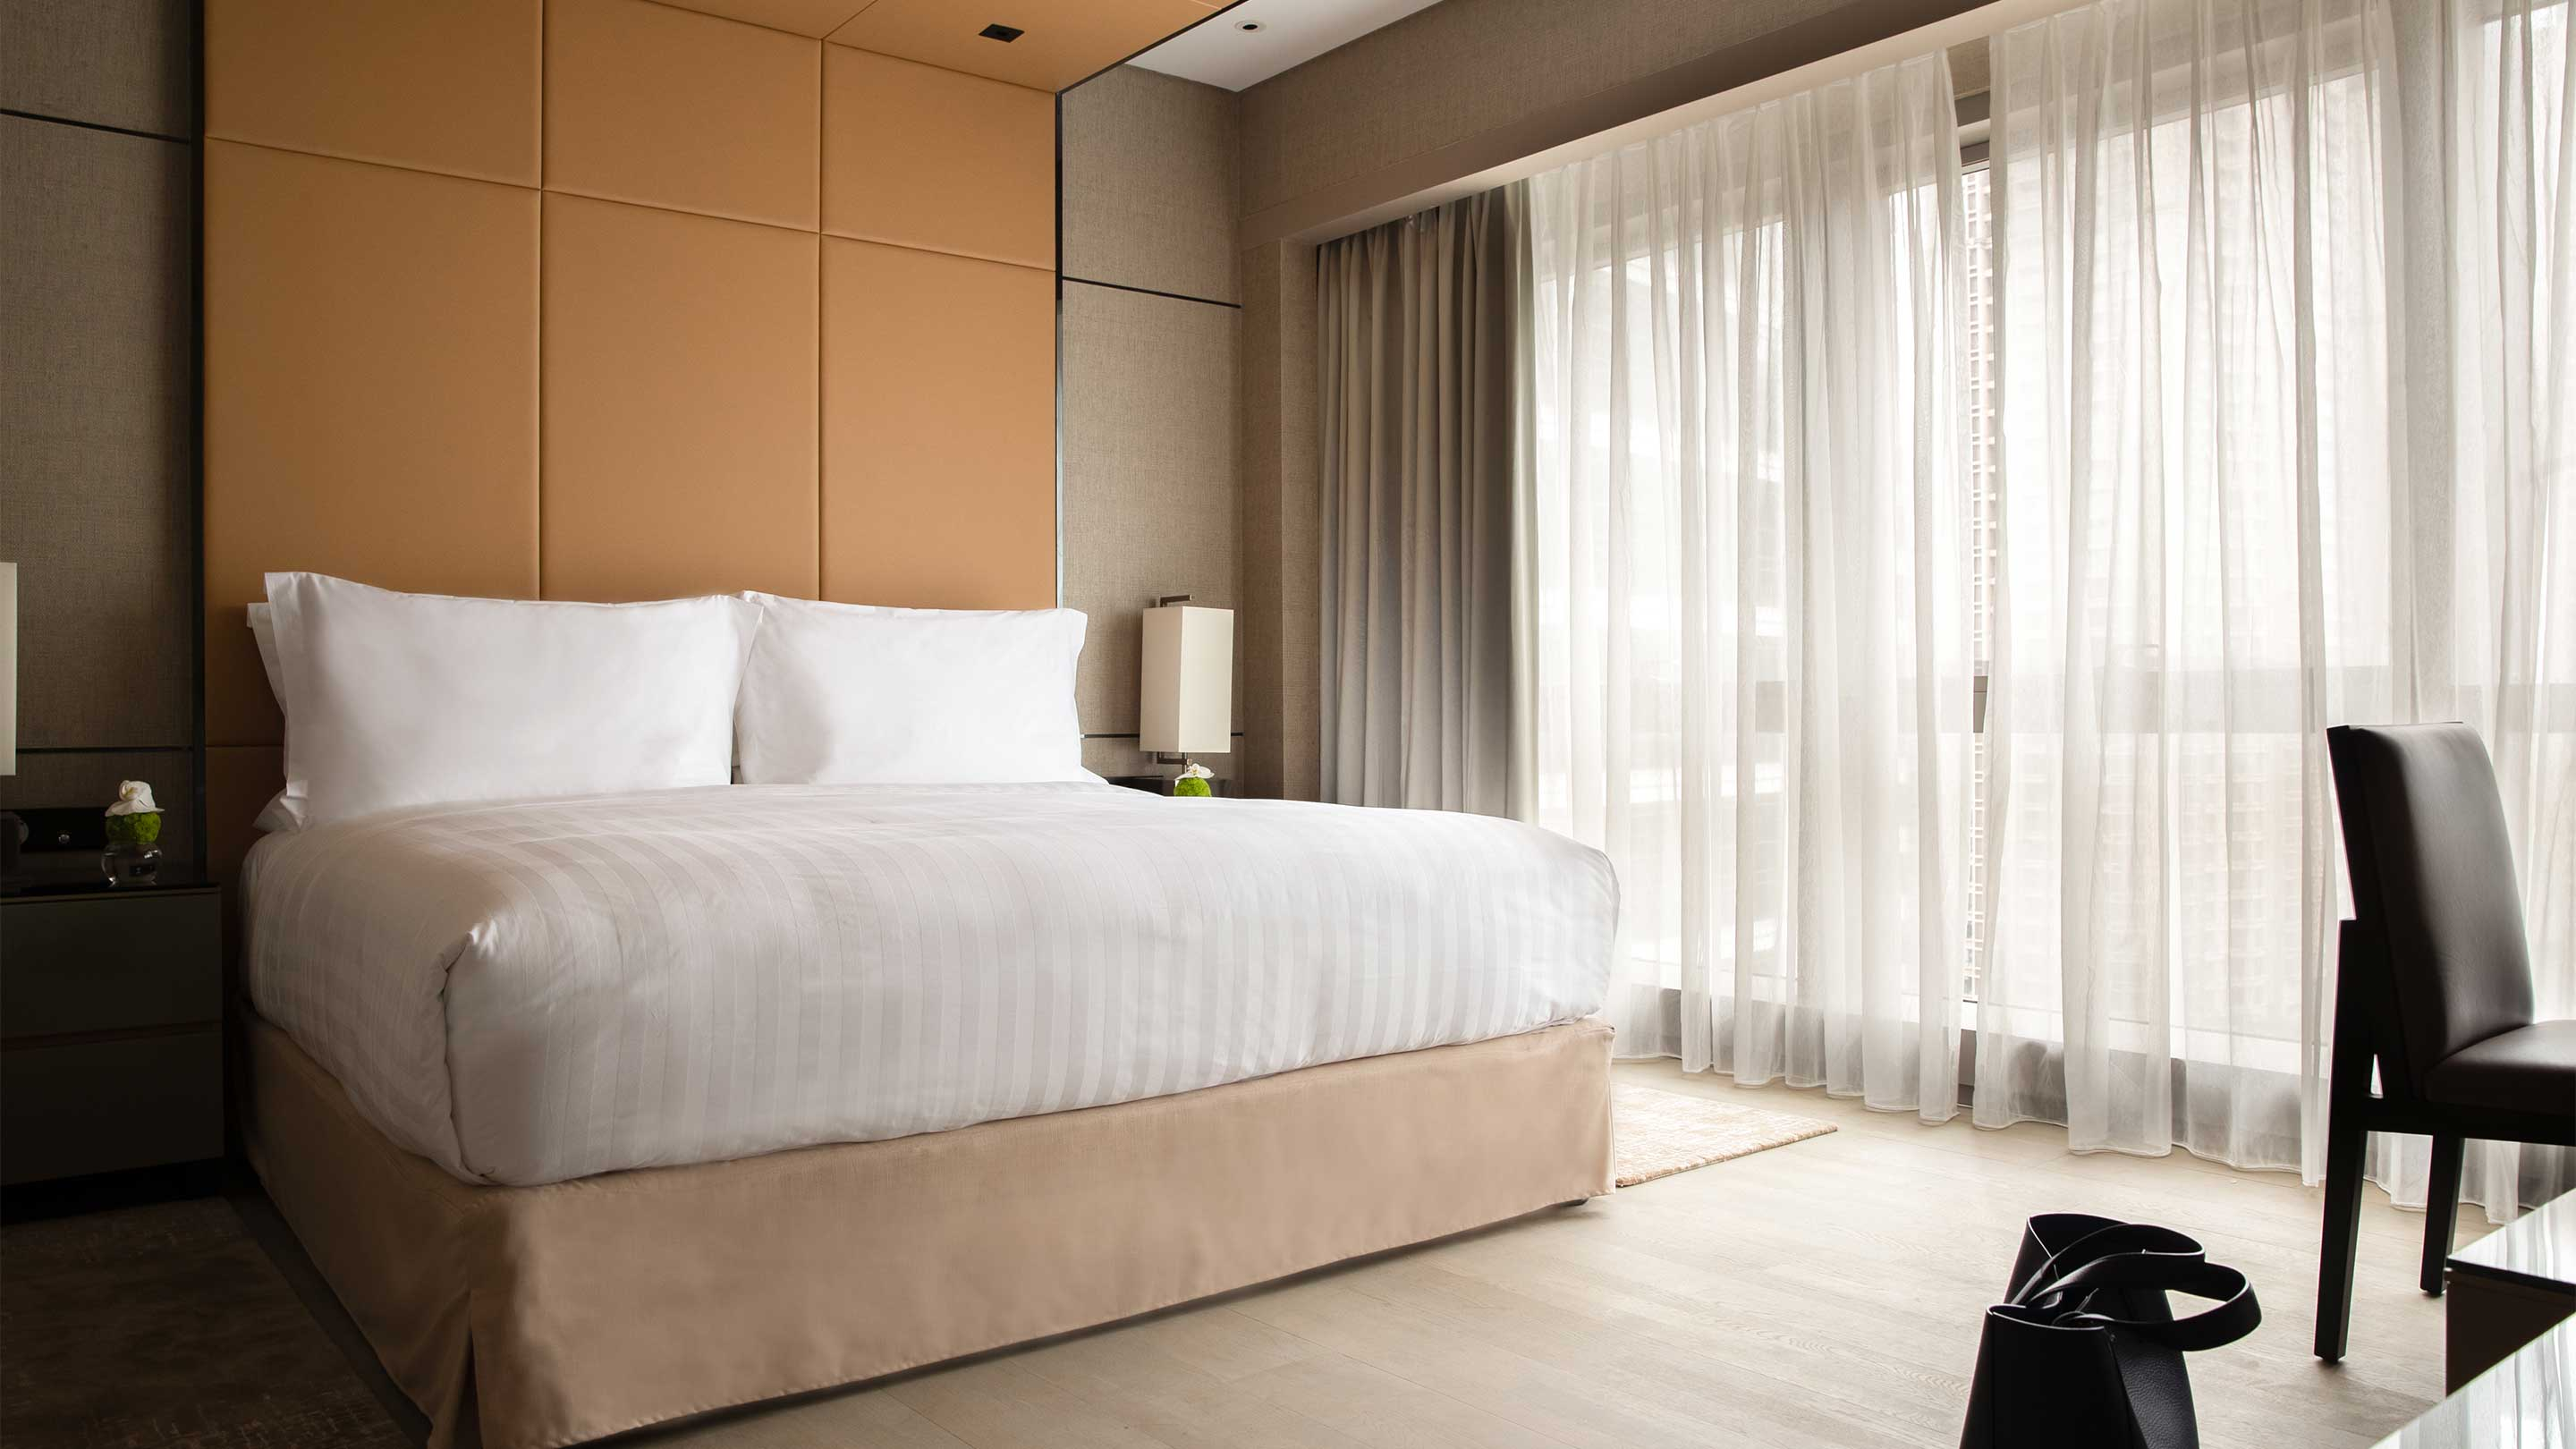 16-9 JUMEIRAH LIVING GUANGZHOU Contemporary 3 bed room suite bed room 2